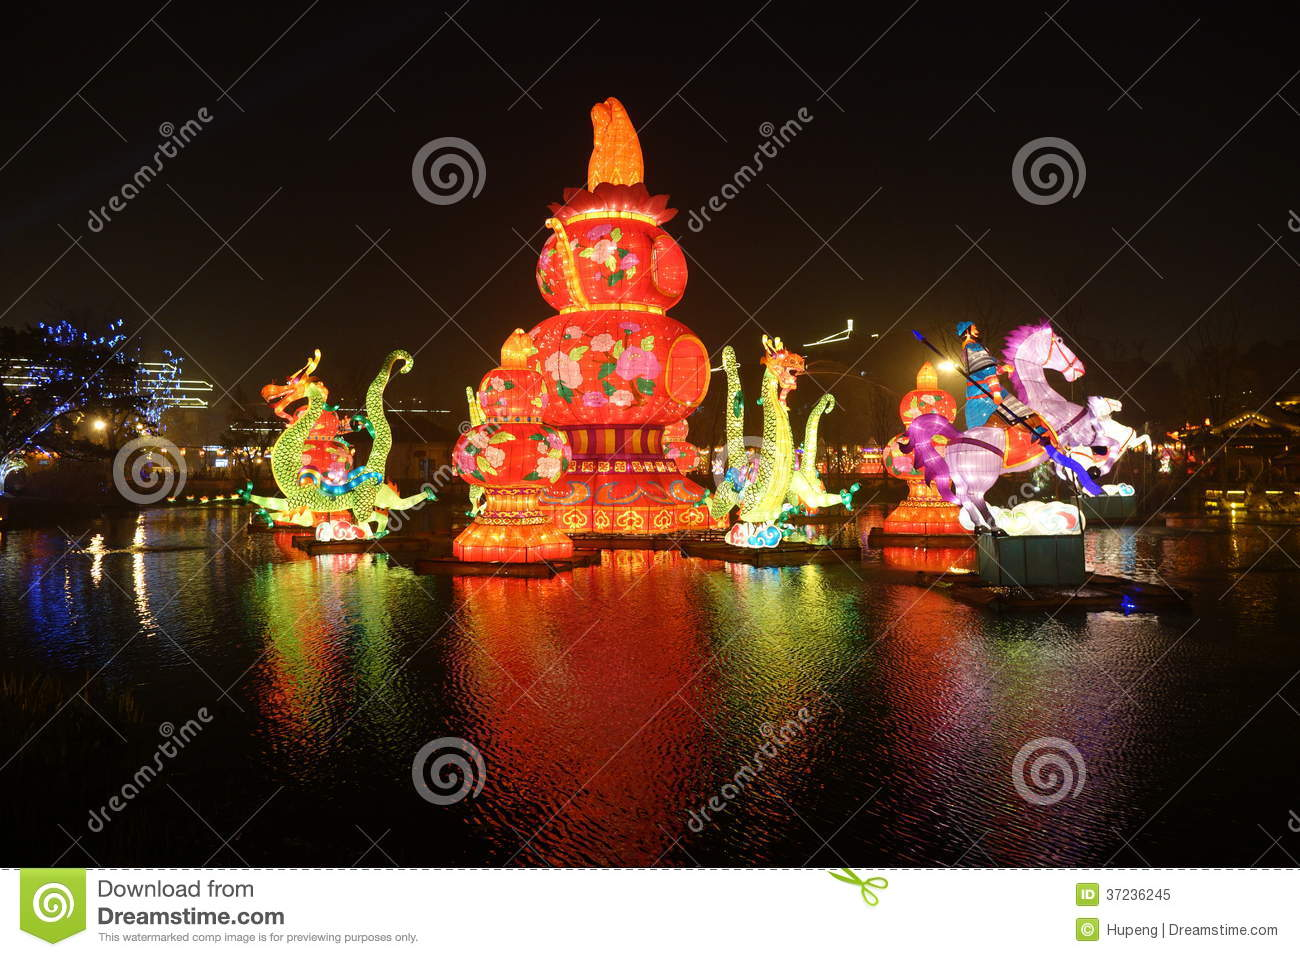 spring festival and lantern festival Activities, recipes and crafts to help you celebrate the lantern festival with your family.